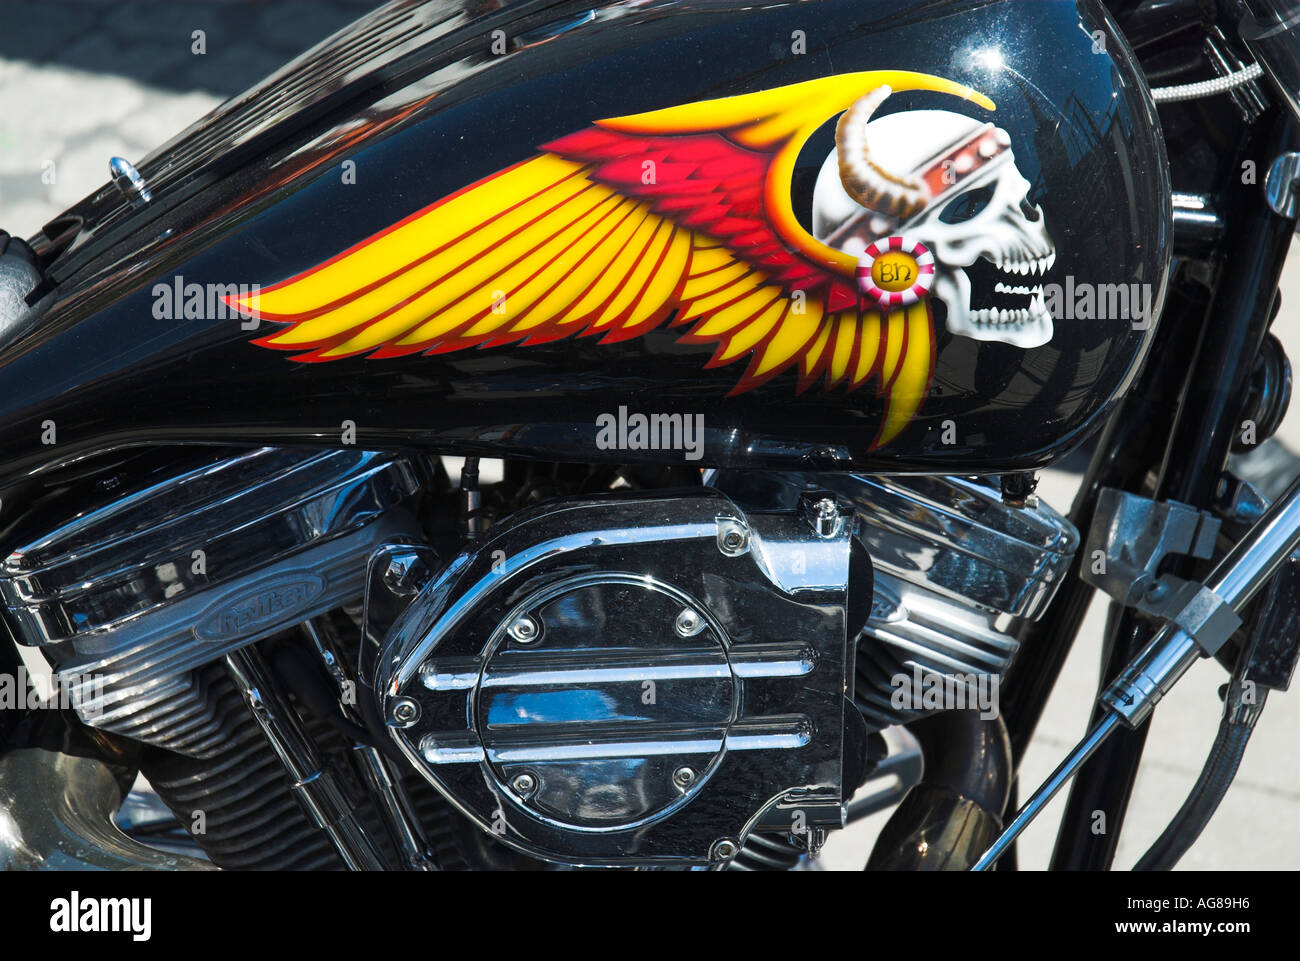 Stock Photo Painting Of Skull On The Fuel Tank Of A Harley Davidson Motorbike 8072917